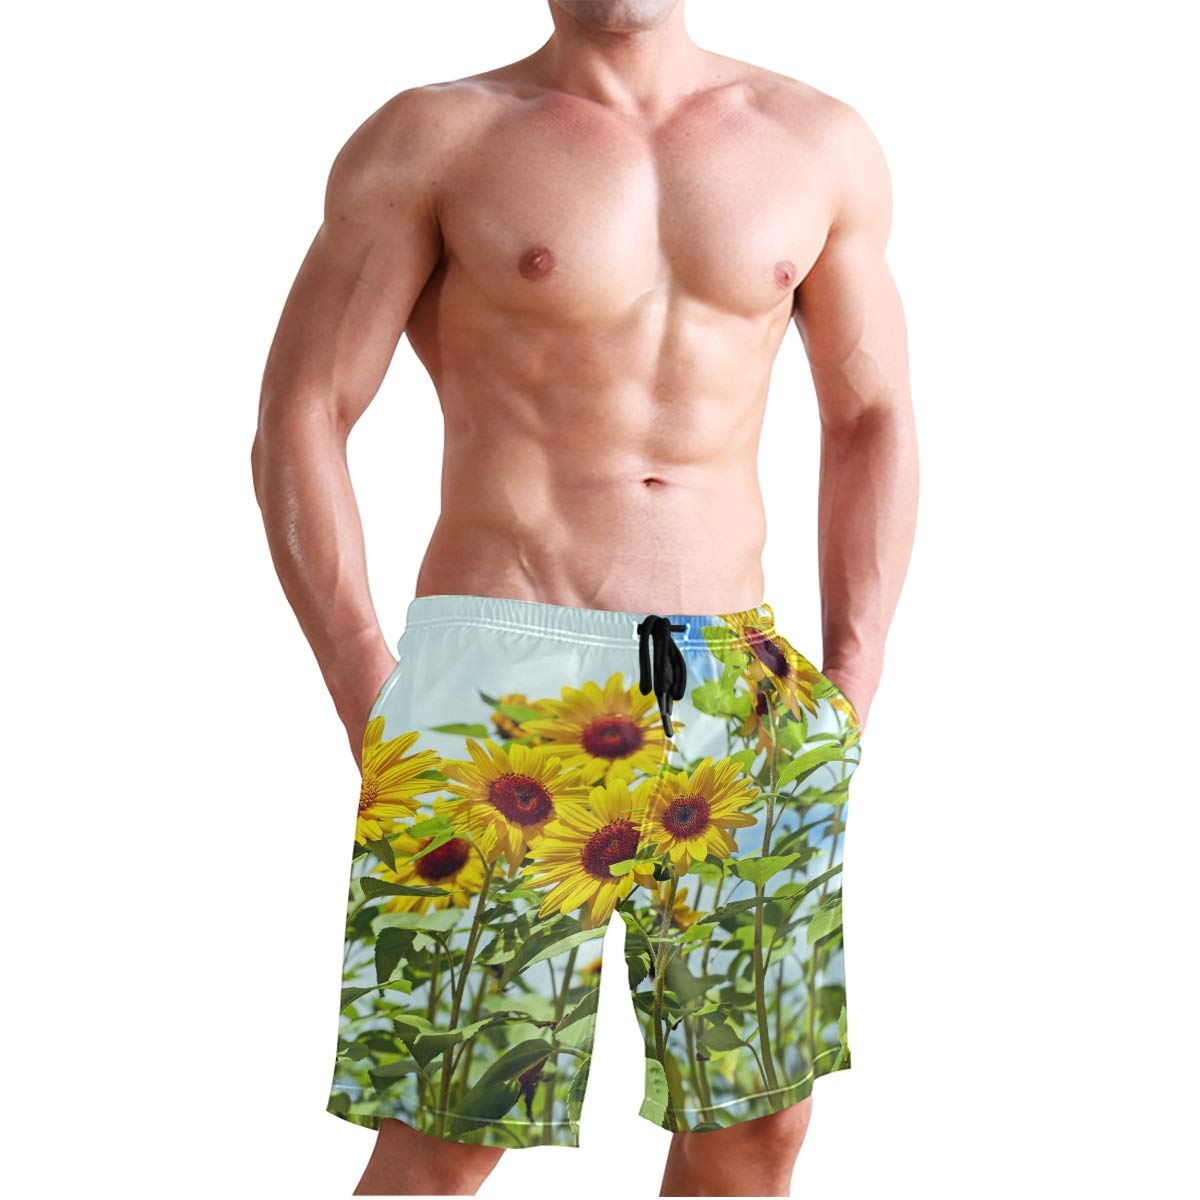 CiCily Men/'s Swim Trunks Cute Sunflower Beach Board Shorts Swimming Short Pants Running Sports Surffing Shorts